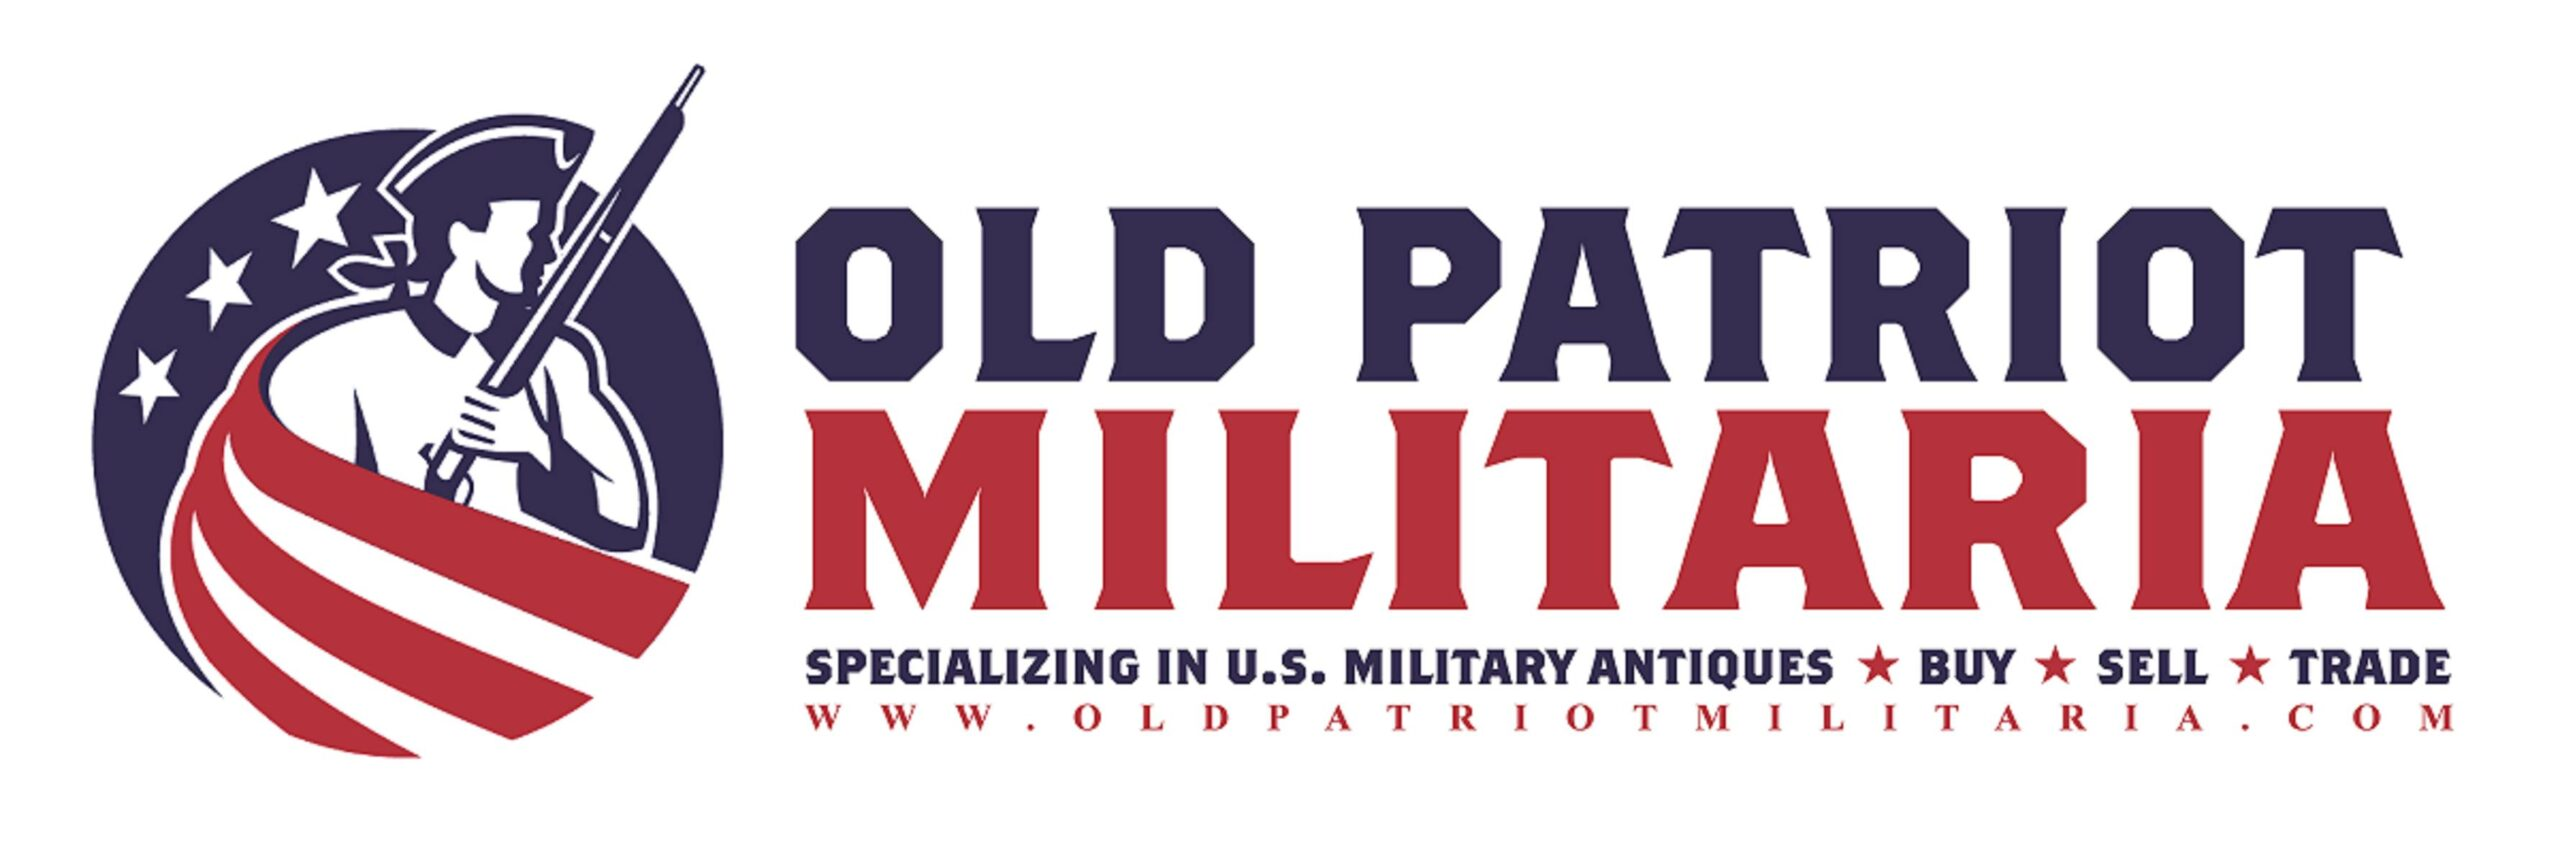 Old Patriot Militaria - Specializing in U.S. Military Antiques